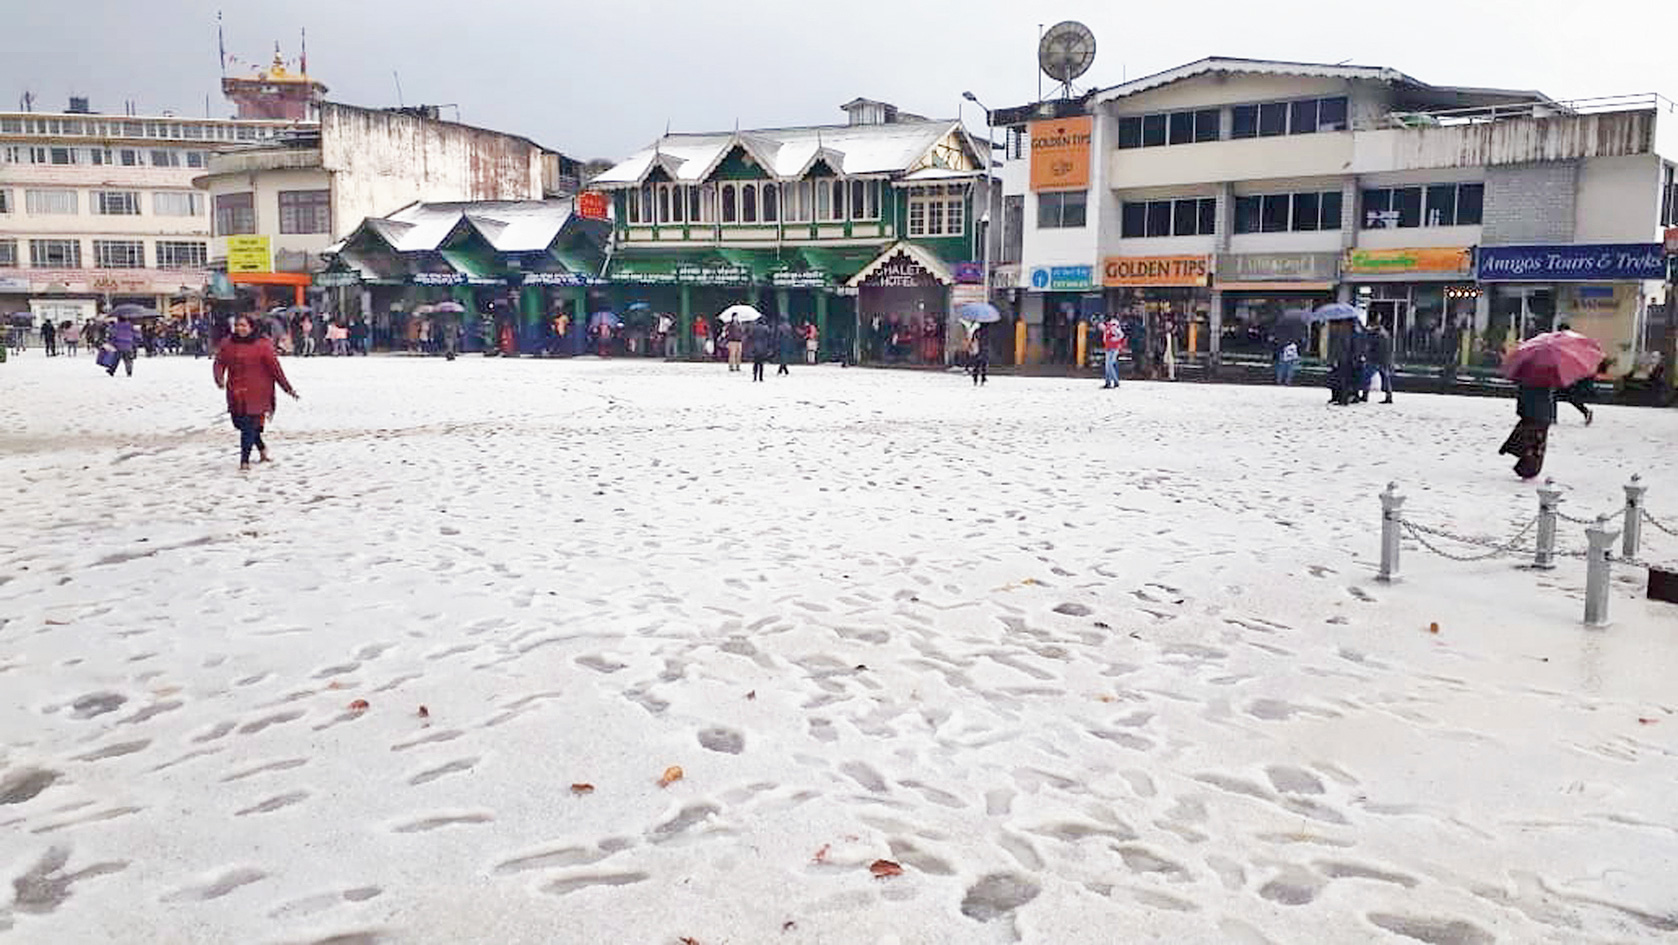 The Chowrasta in Darjeeling covered in a sheet of hailstones on Saturday.